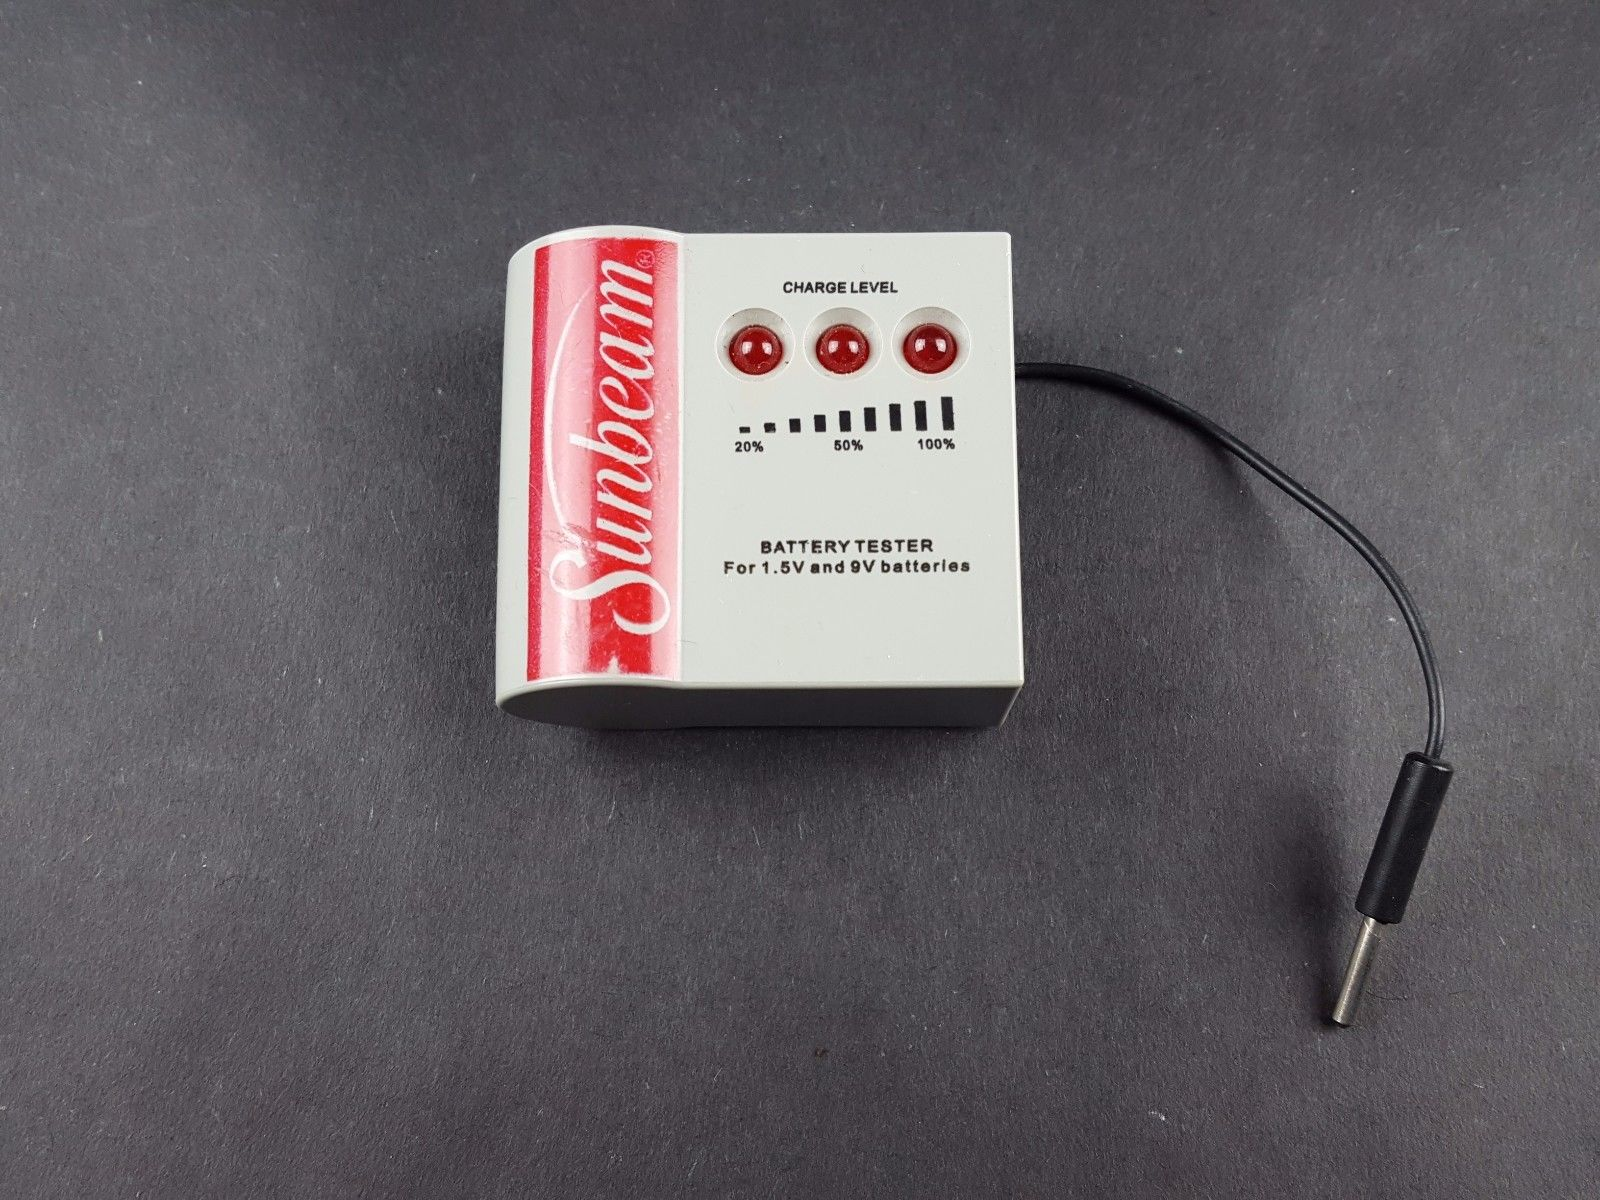 A battery tester with lights that indicate the percentage left in a battery.